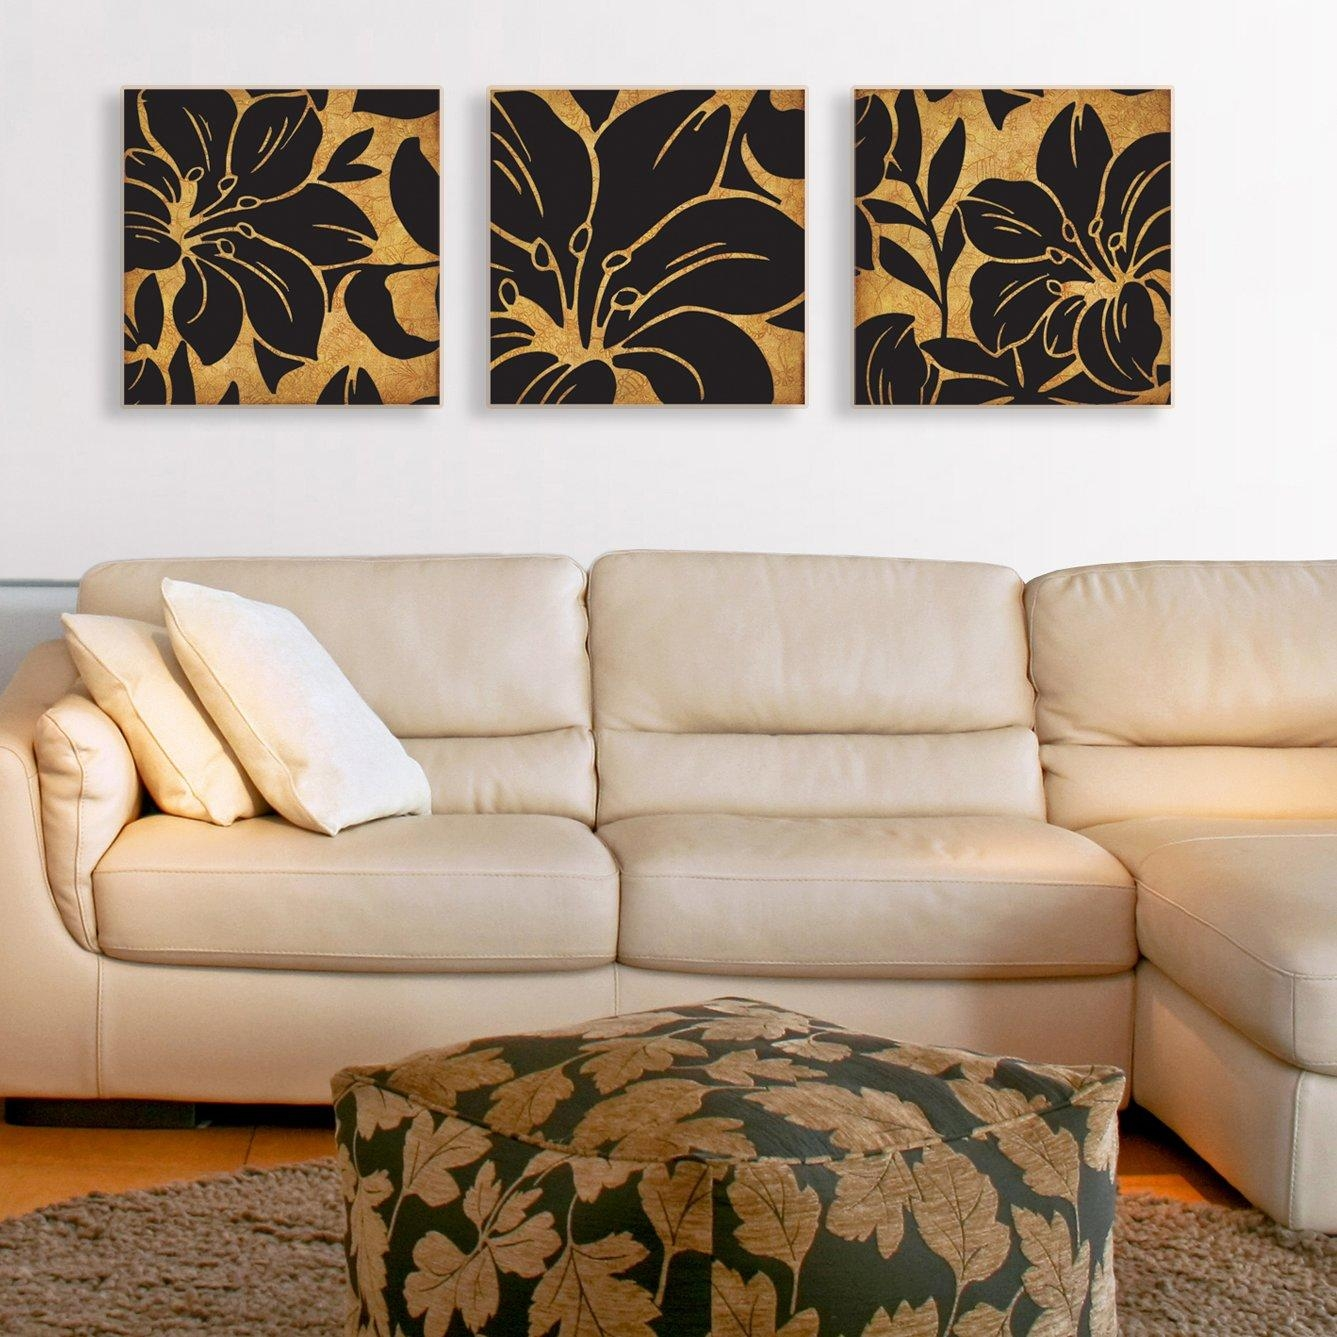 Canvas Wall Art Sets | Roselawnlutheran In Canvas Wall Art Sets Of (View 10 of 20)